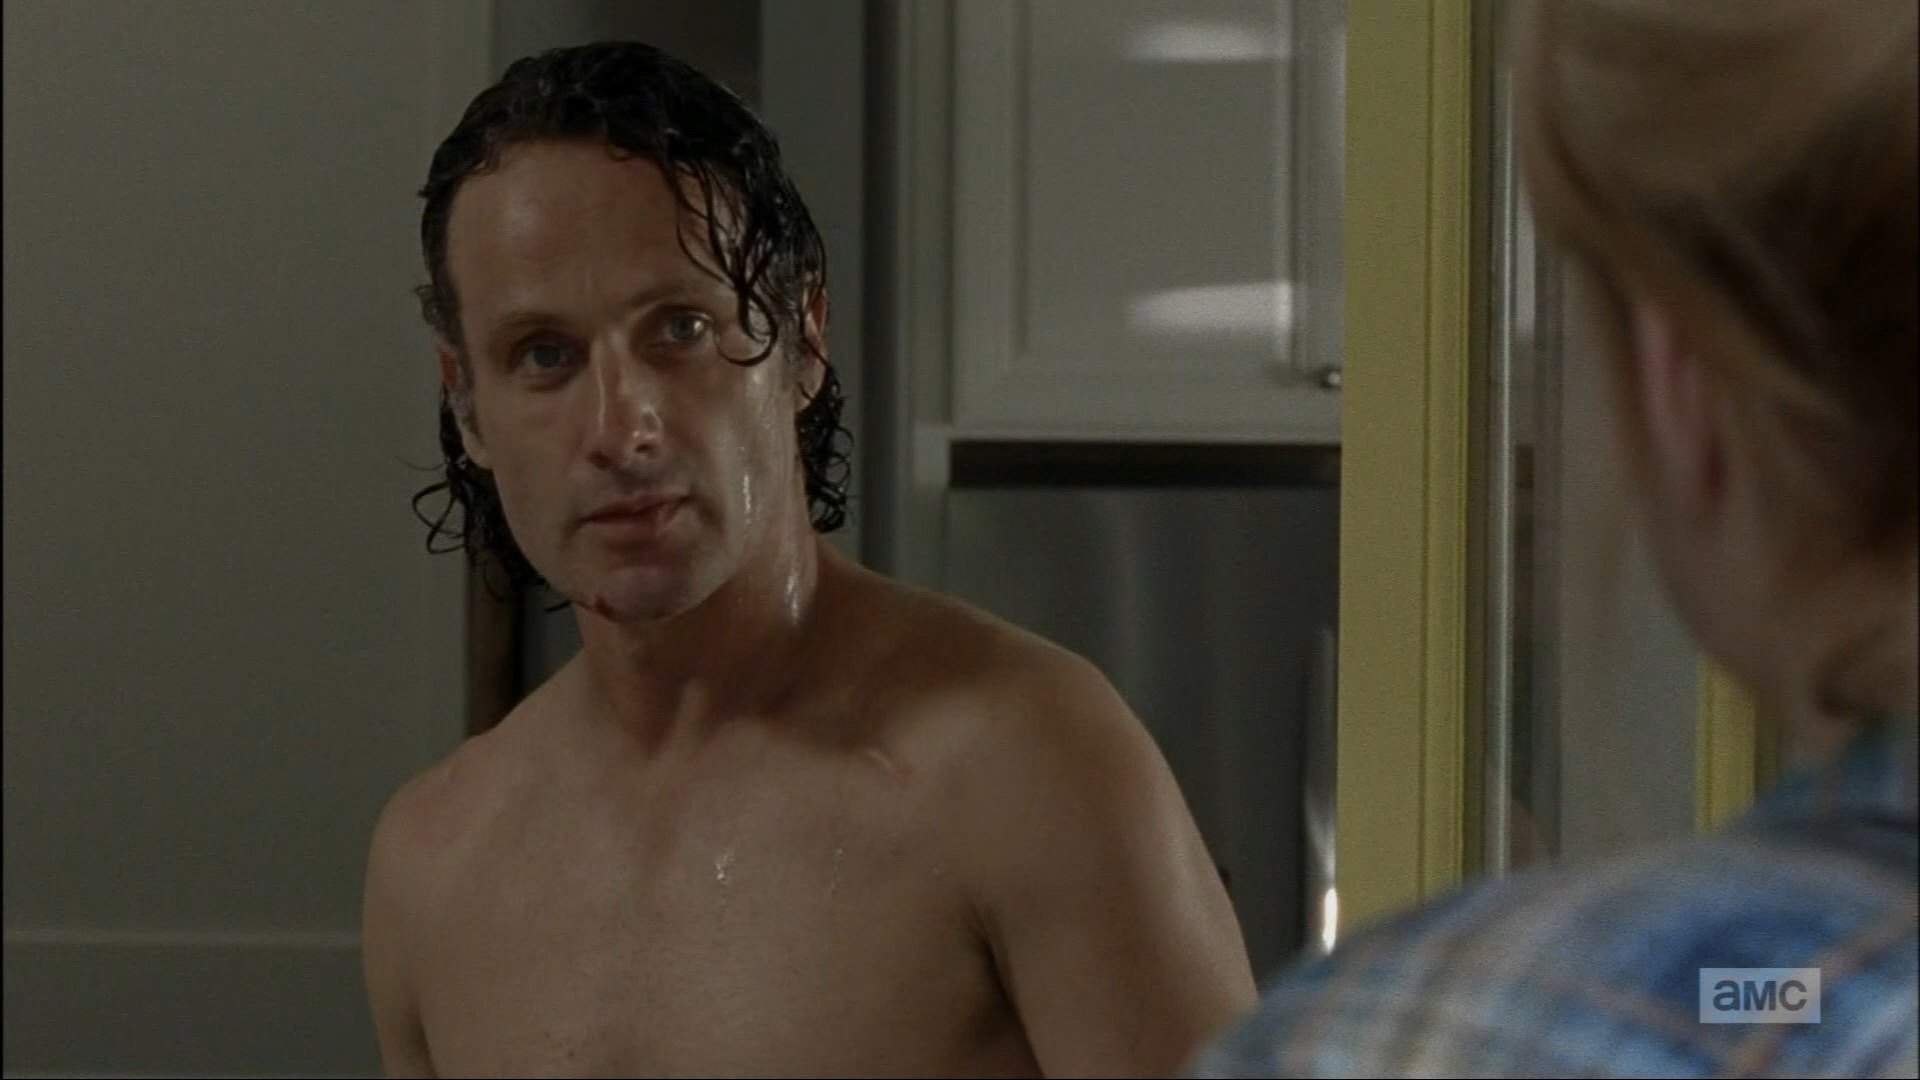 Nude andrew lincoln Your Week